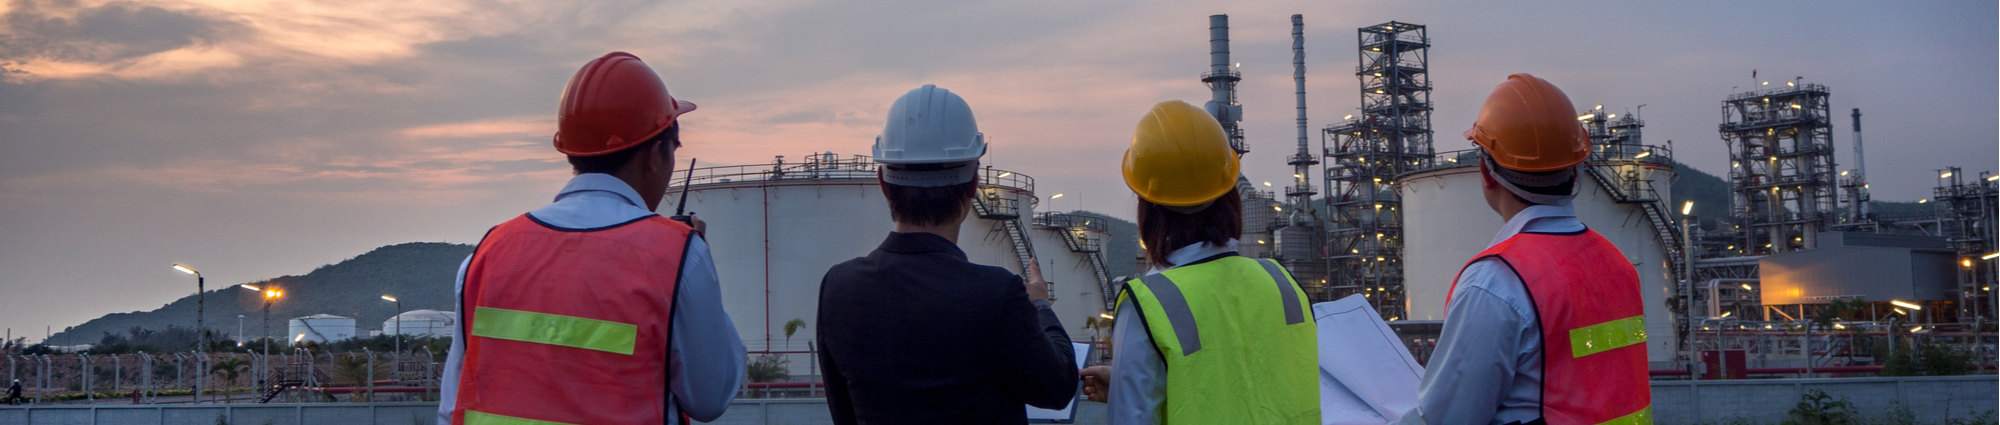 engineers looking at natural gas site together